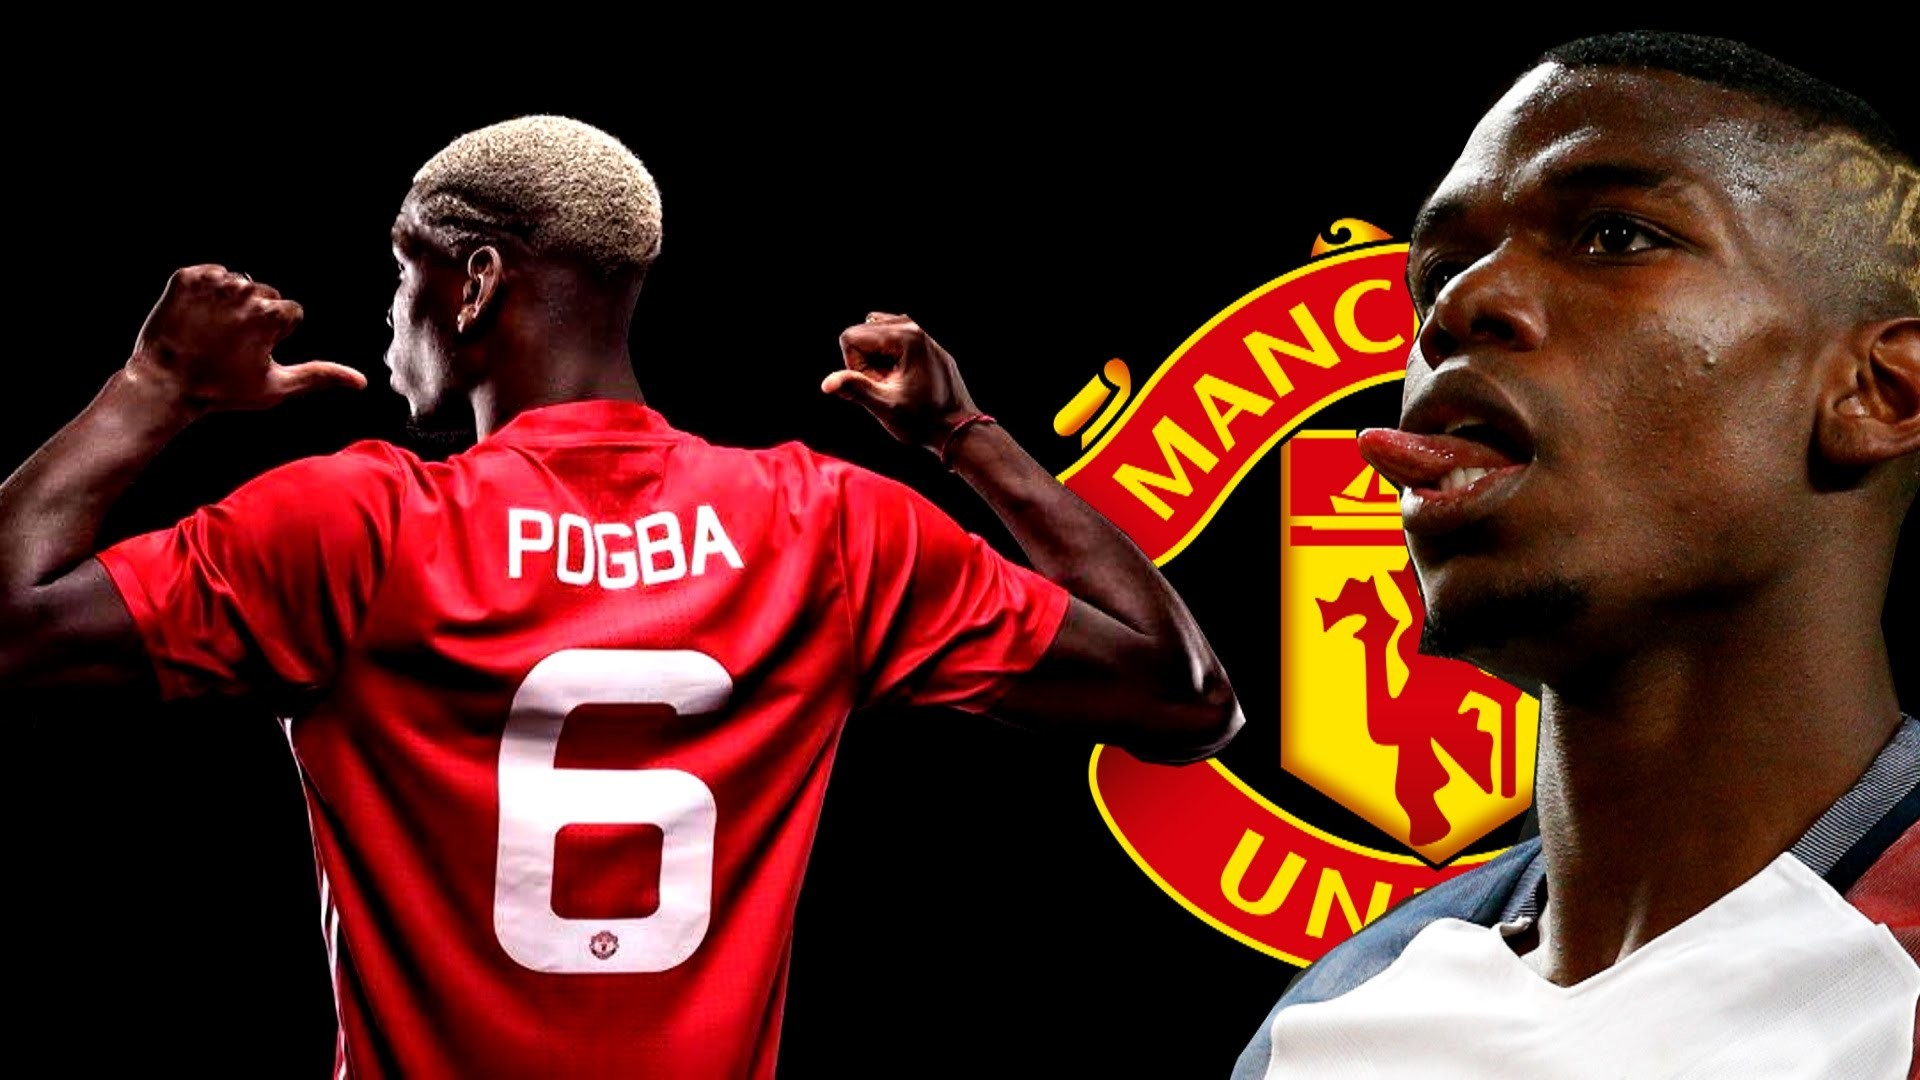 Manchester United Wallpaper Iphone X Pogba Dab Wallpaper 87 Images